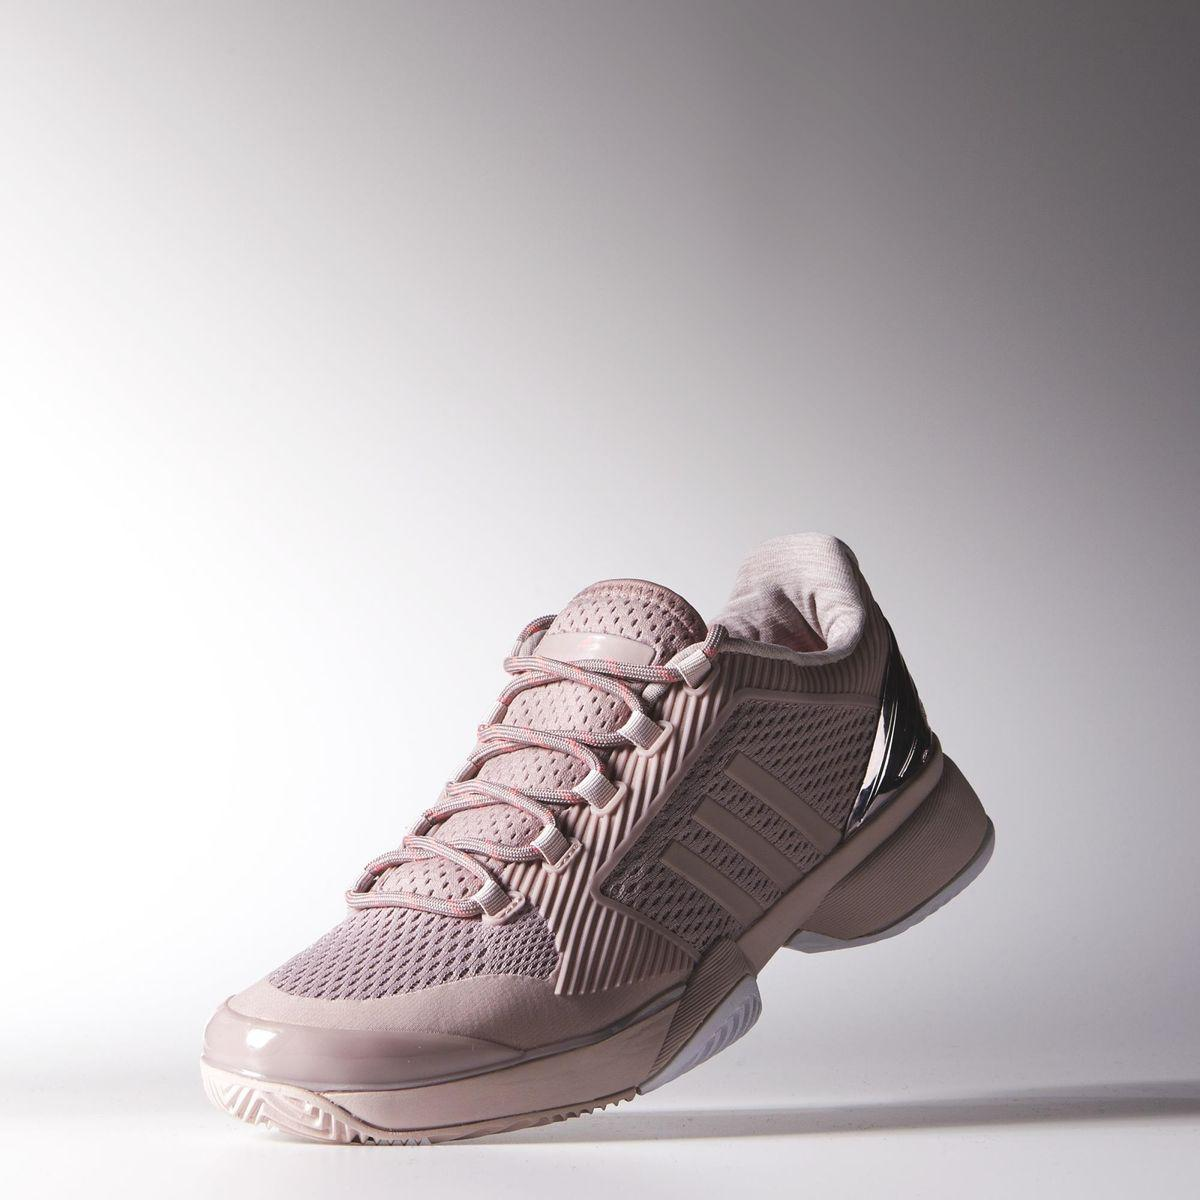 Stella Mccartney Adidas Womens Tennis Shoes Sale